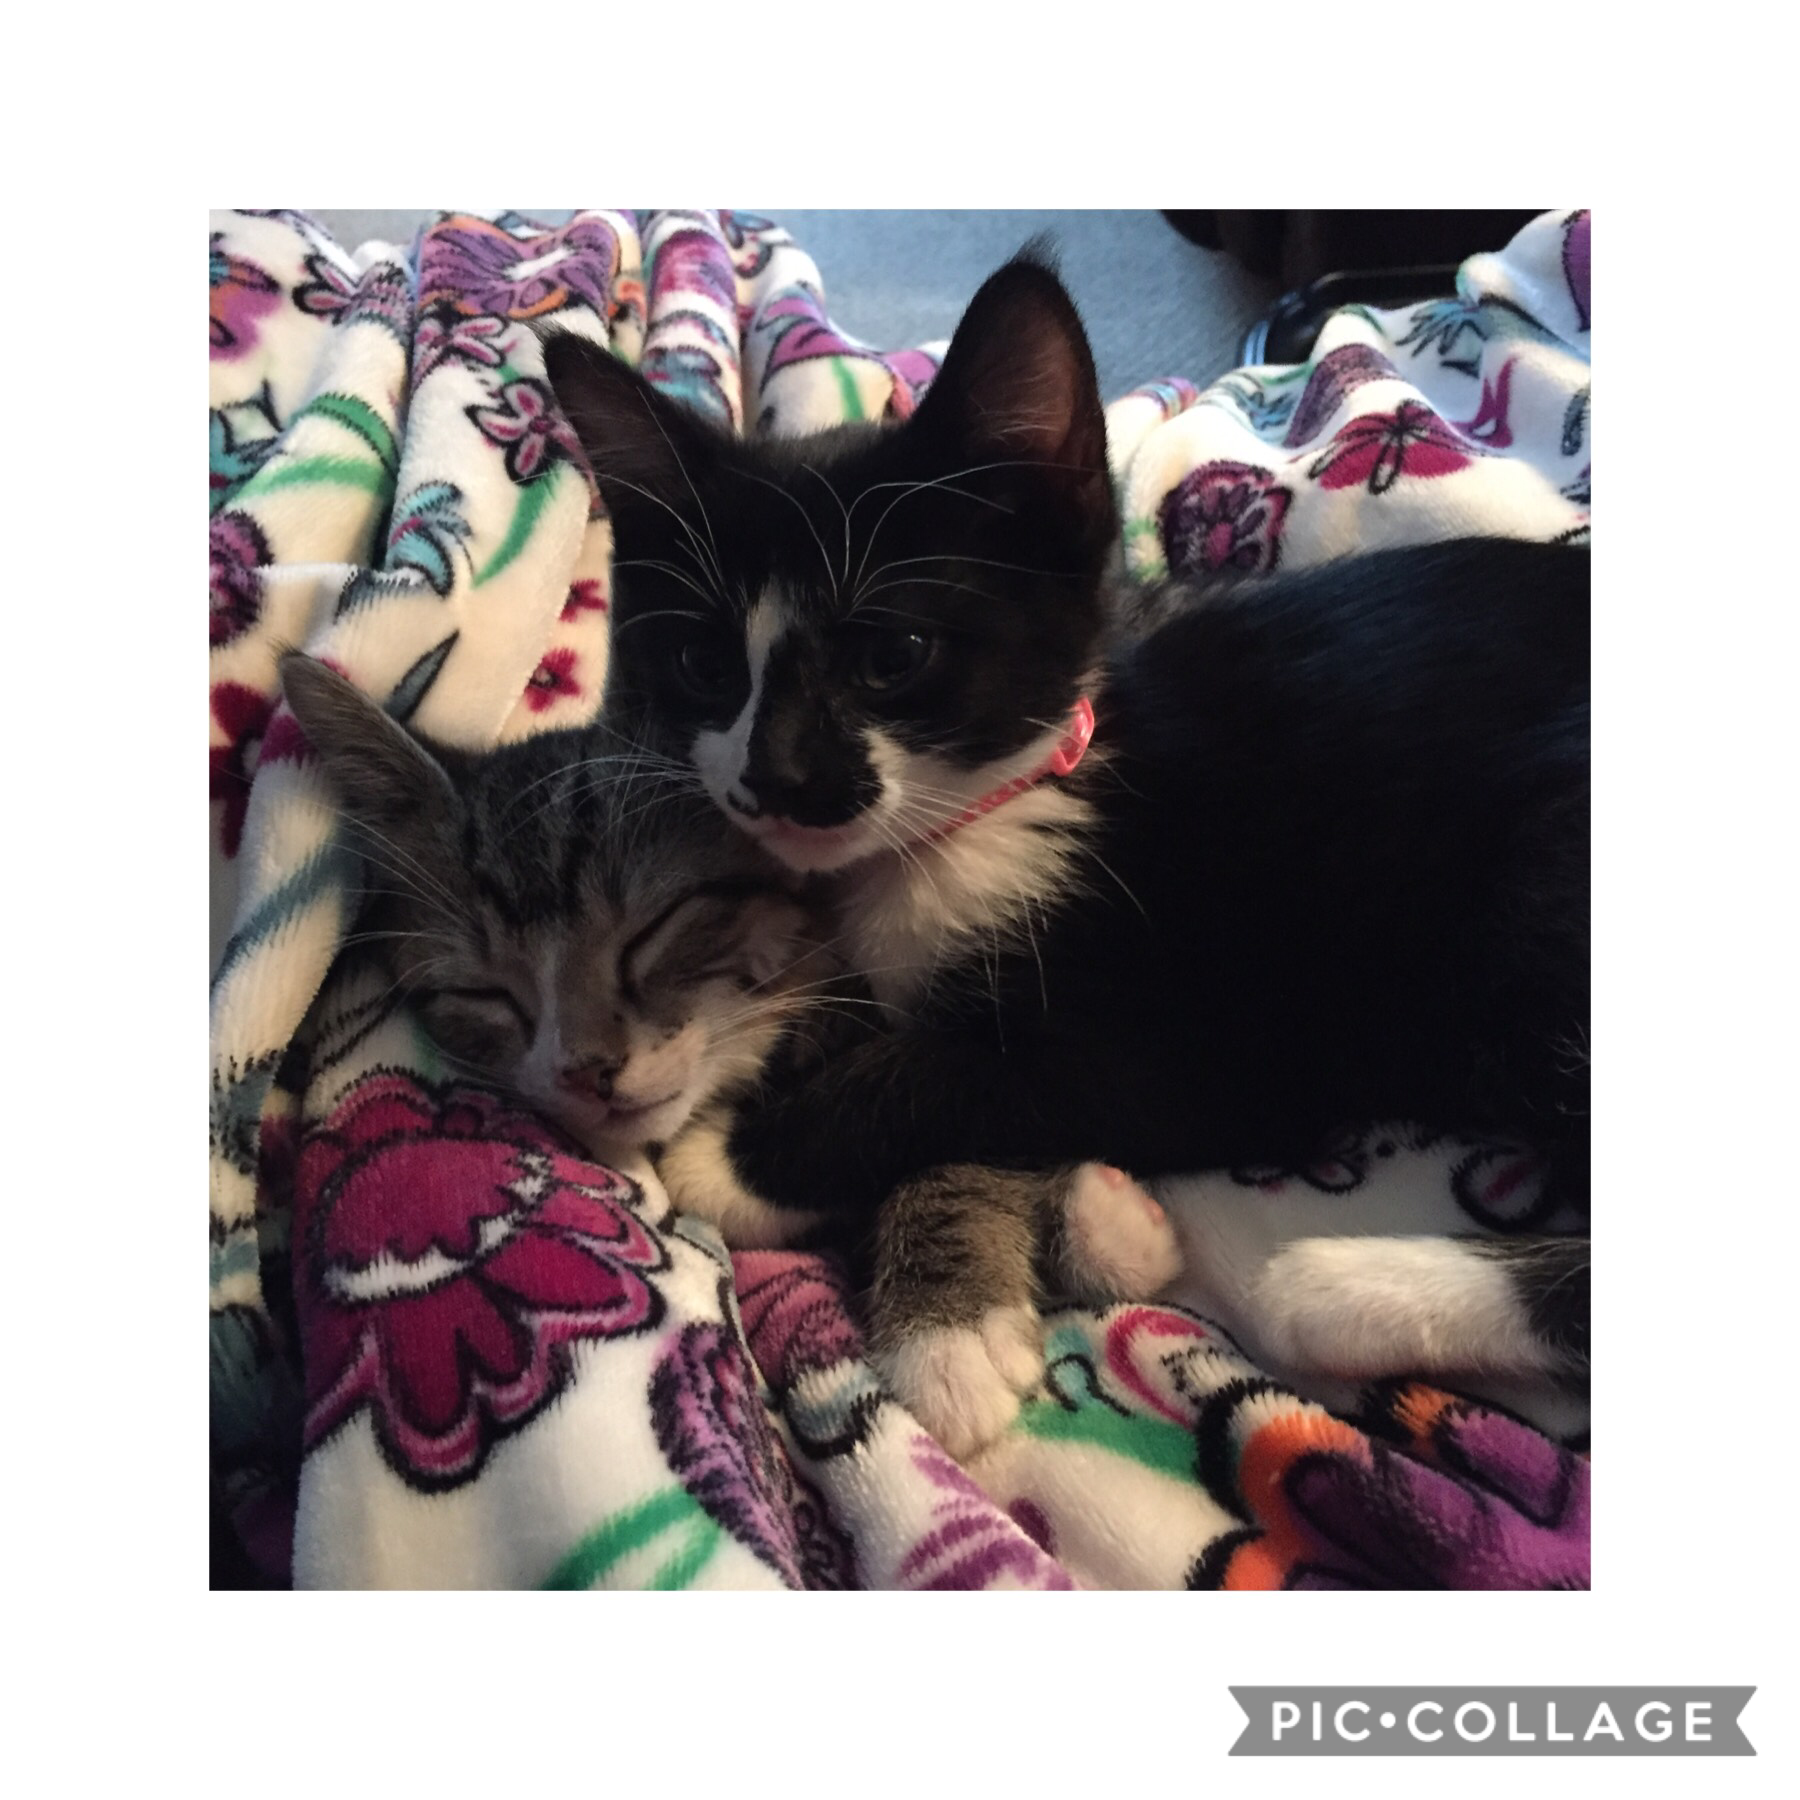 Here is a picture of my cats if you decide to use it for my contest in the other post. Let me know if you want me to make it smaller for you to use it